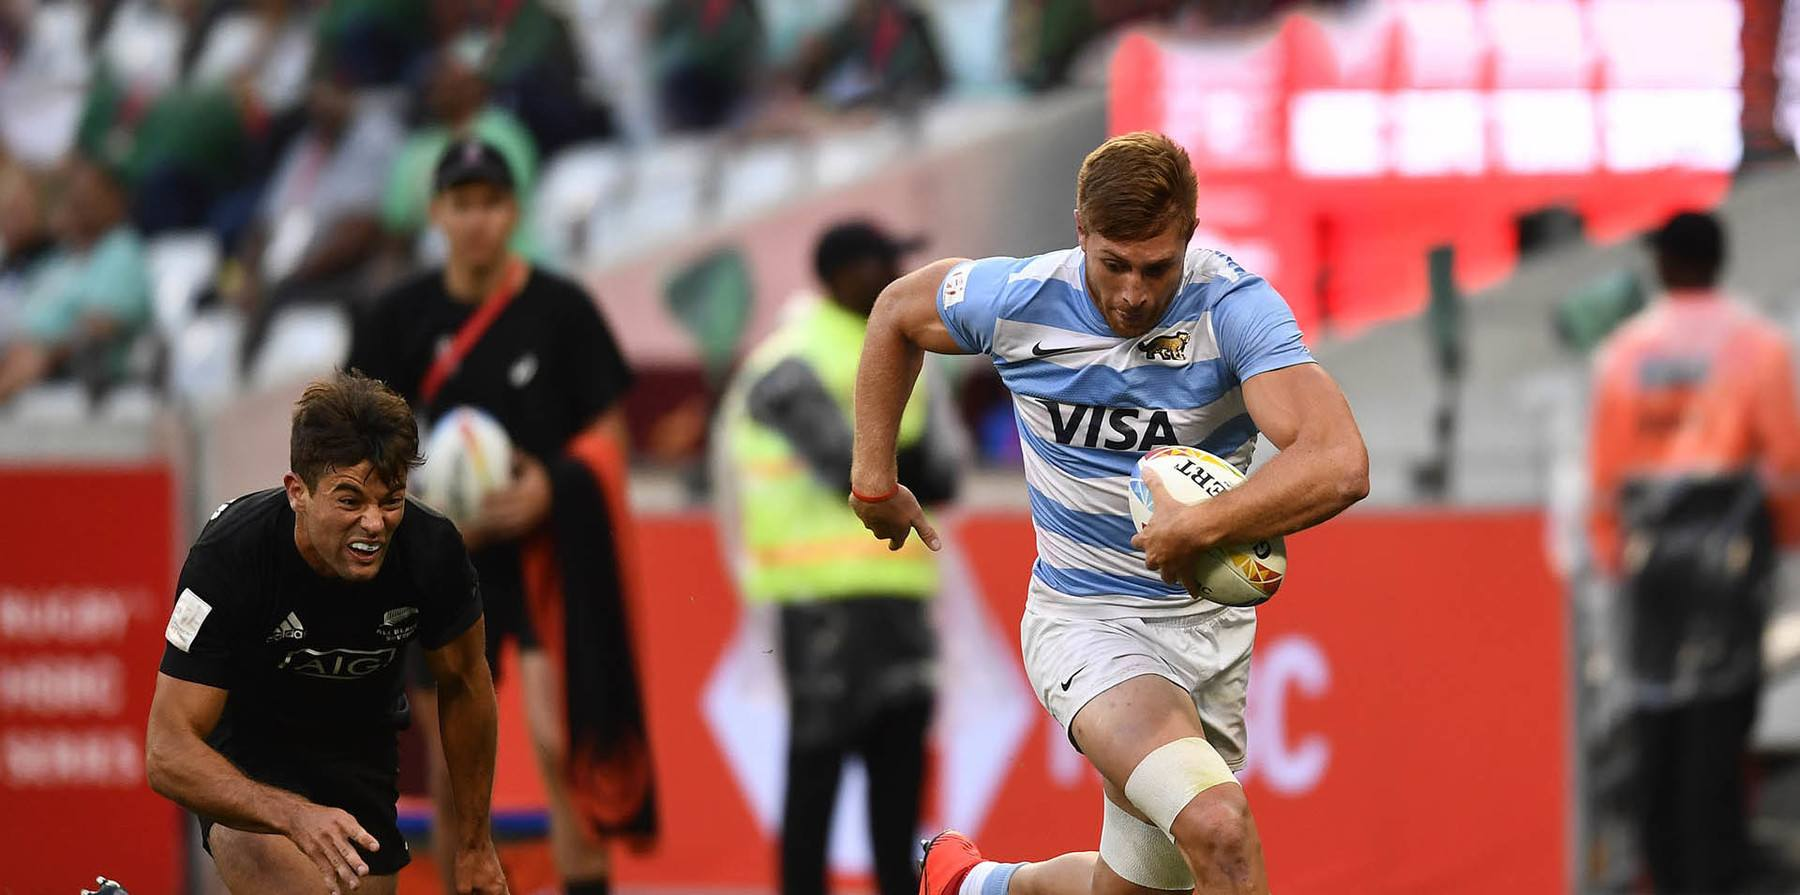 Argentina v New Zealand at Cape Town Sevens 2019